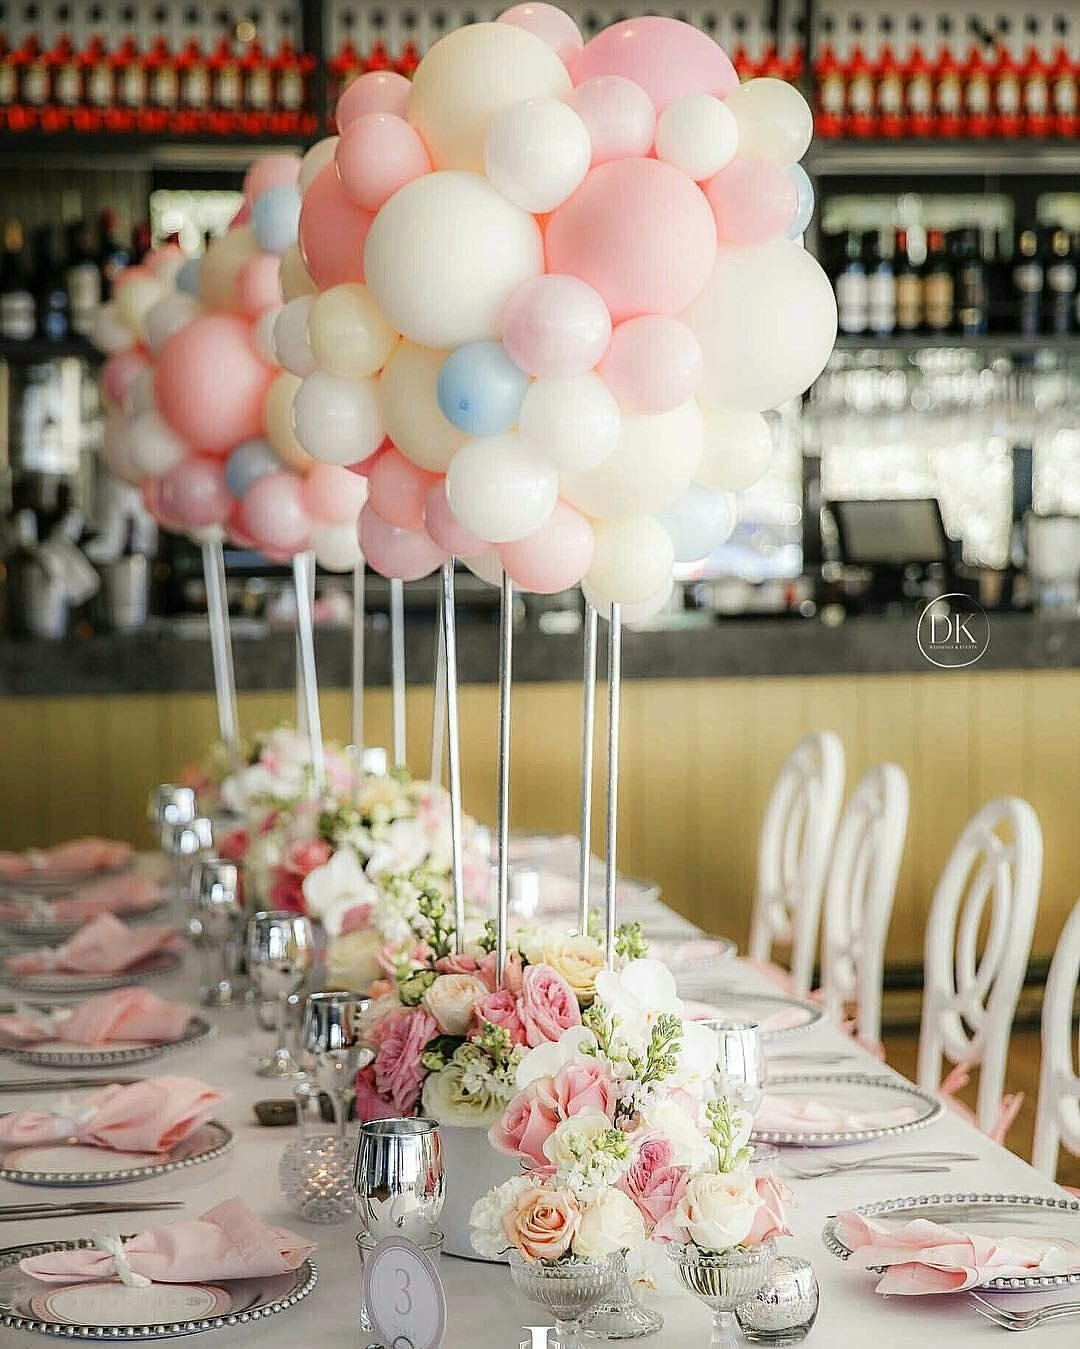 Pin By Dace On Ballons Design